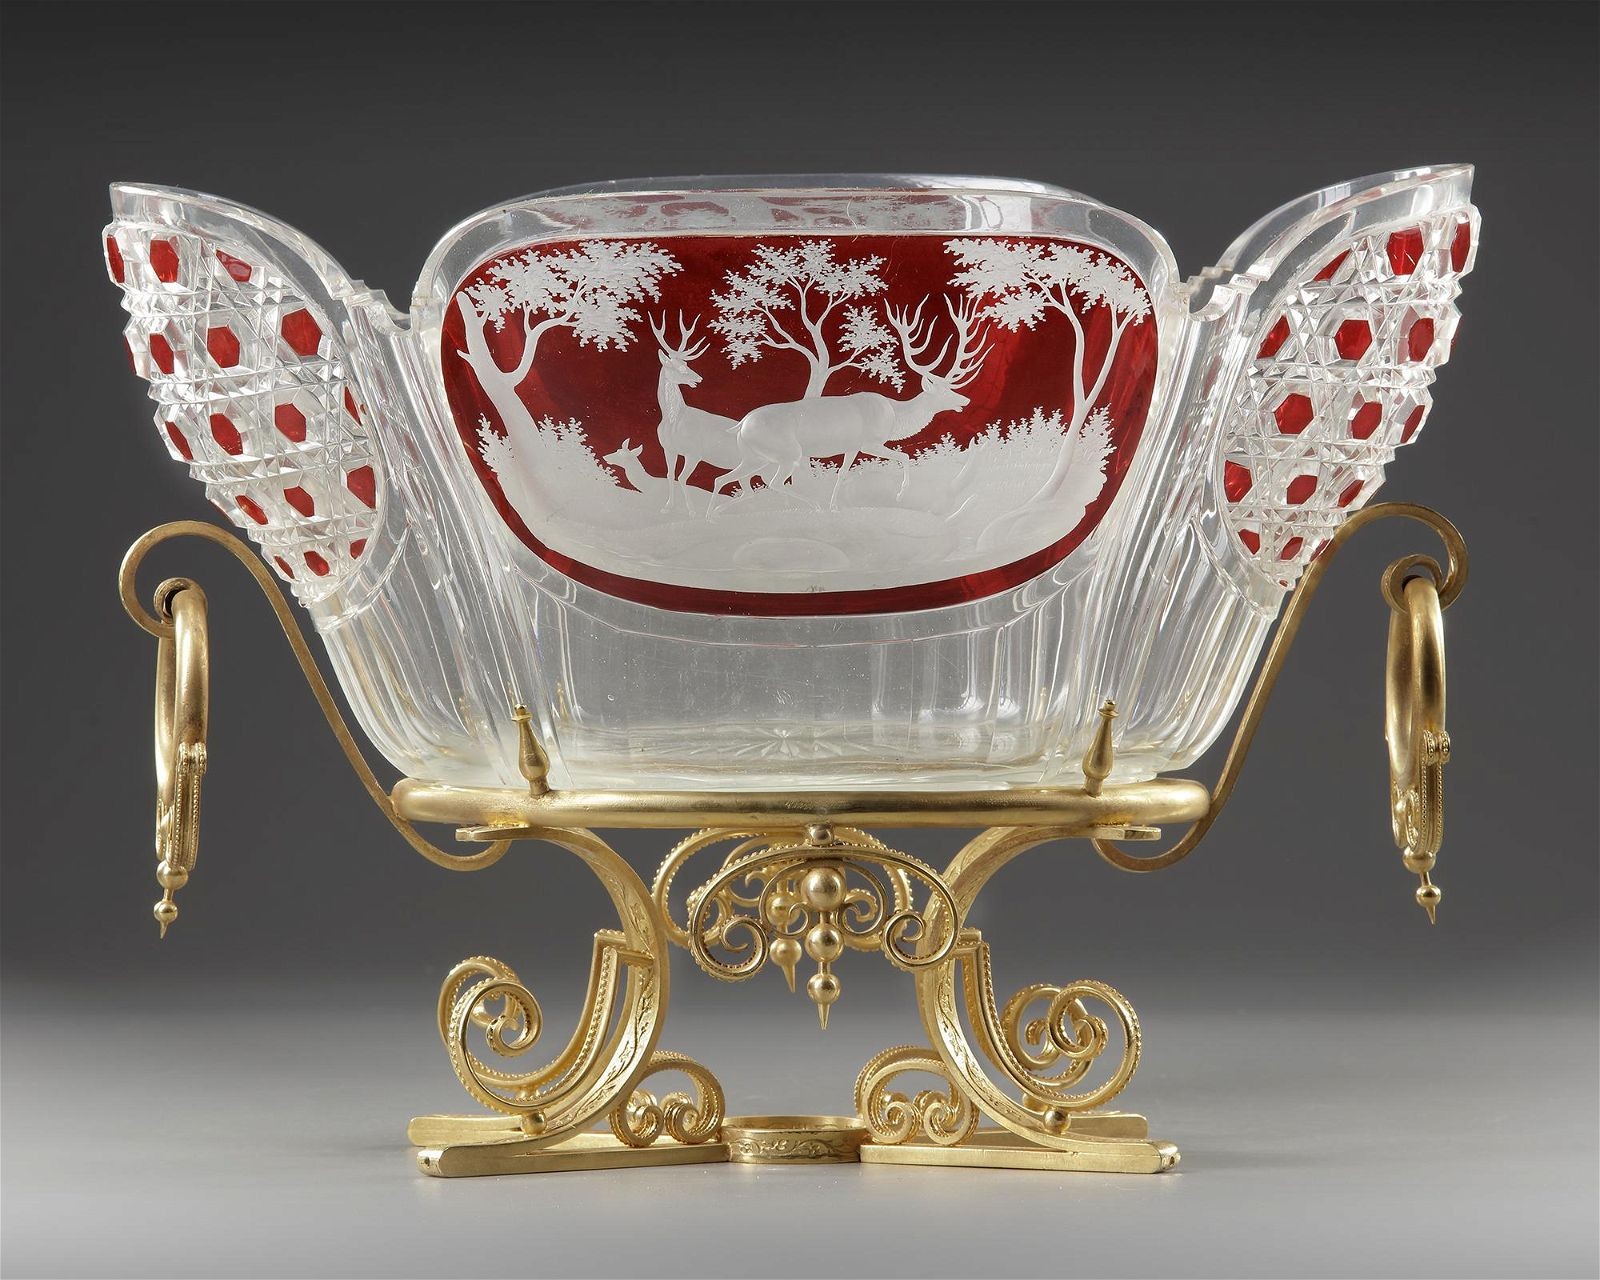 A CRYSTAL CUP, LATE 19TH CENTURY